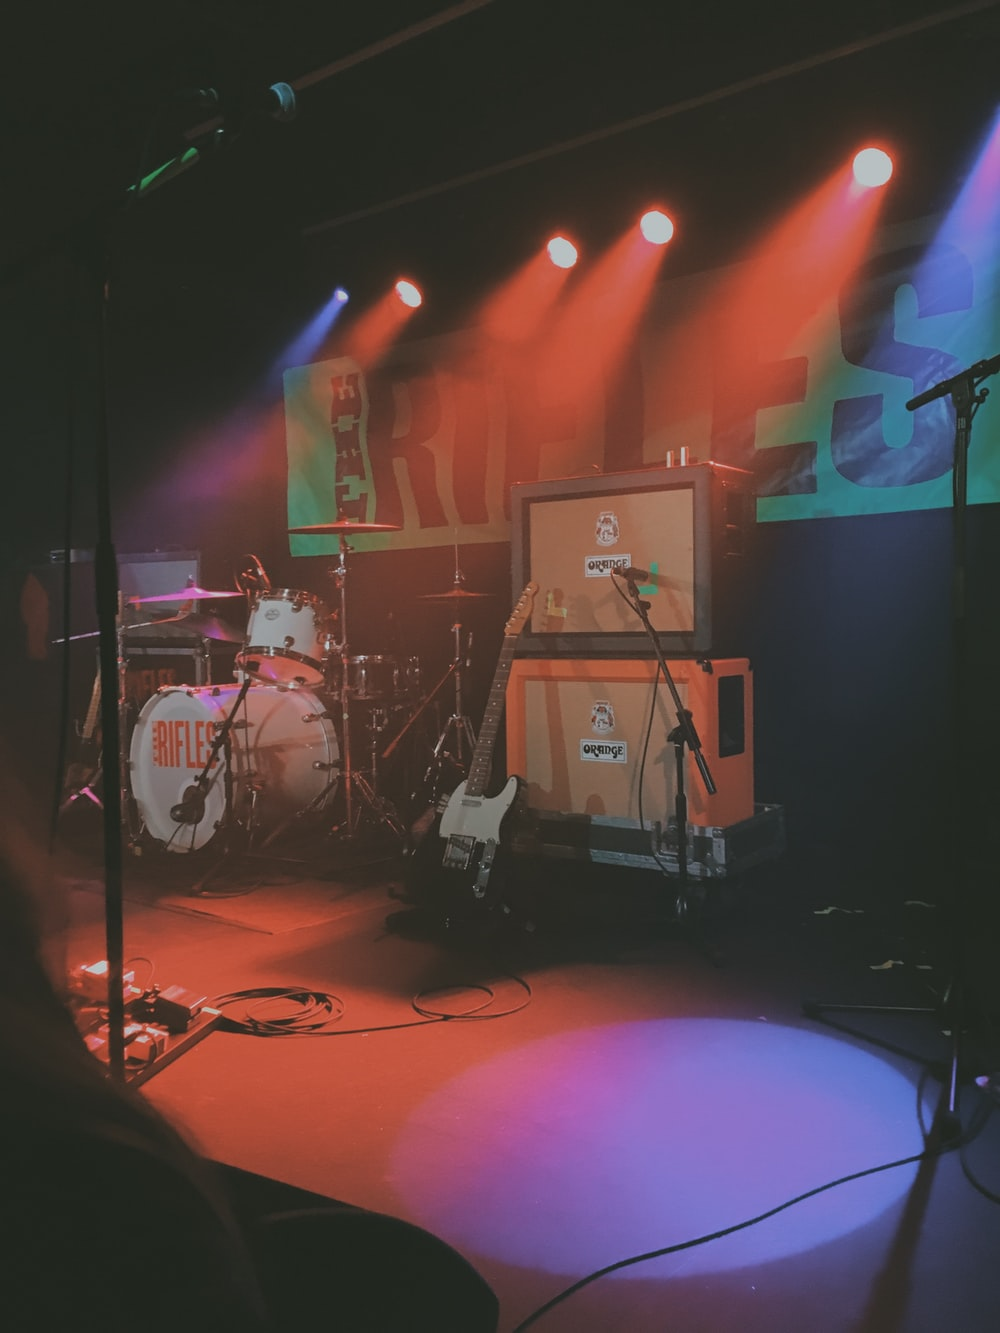 black and white electric guitar near speaker and drums